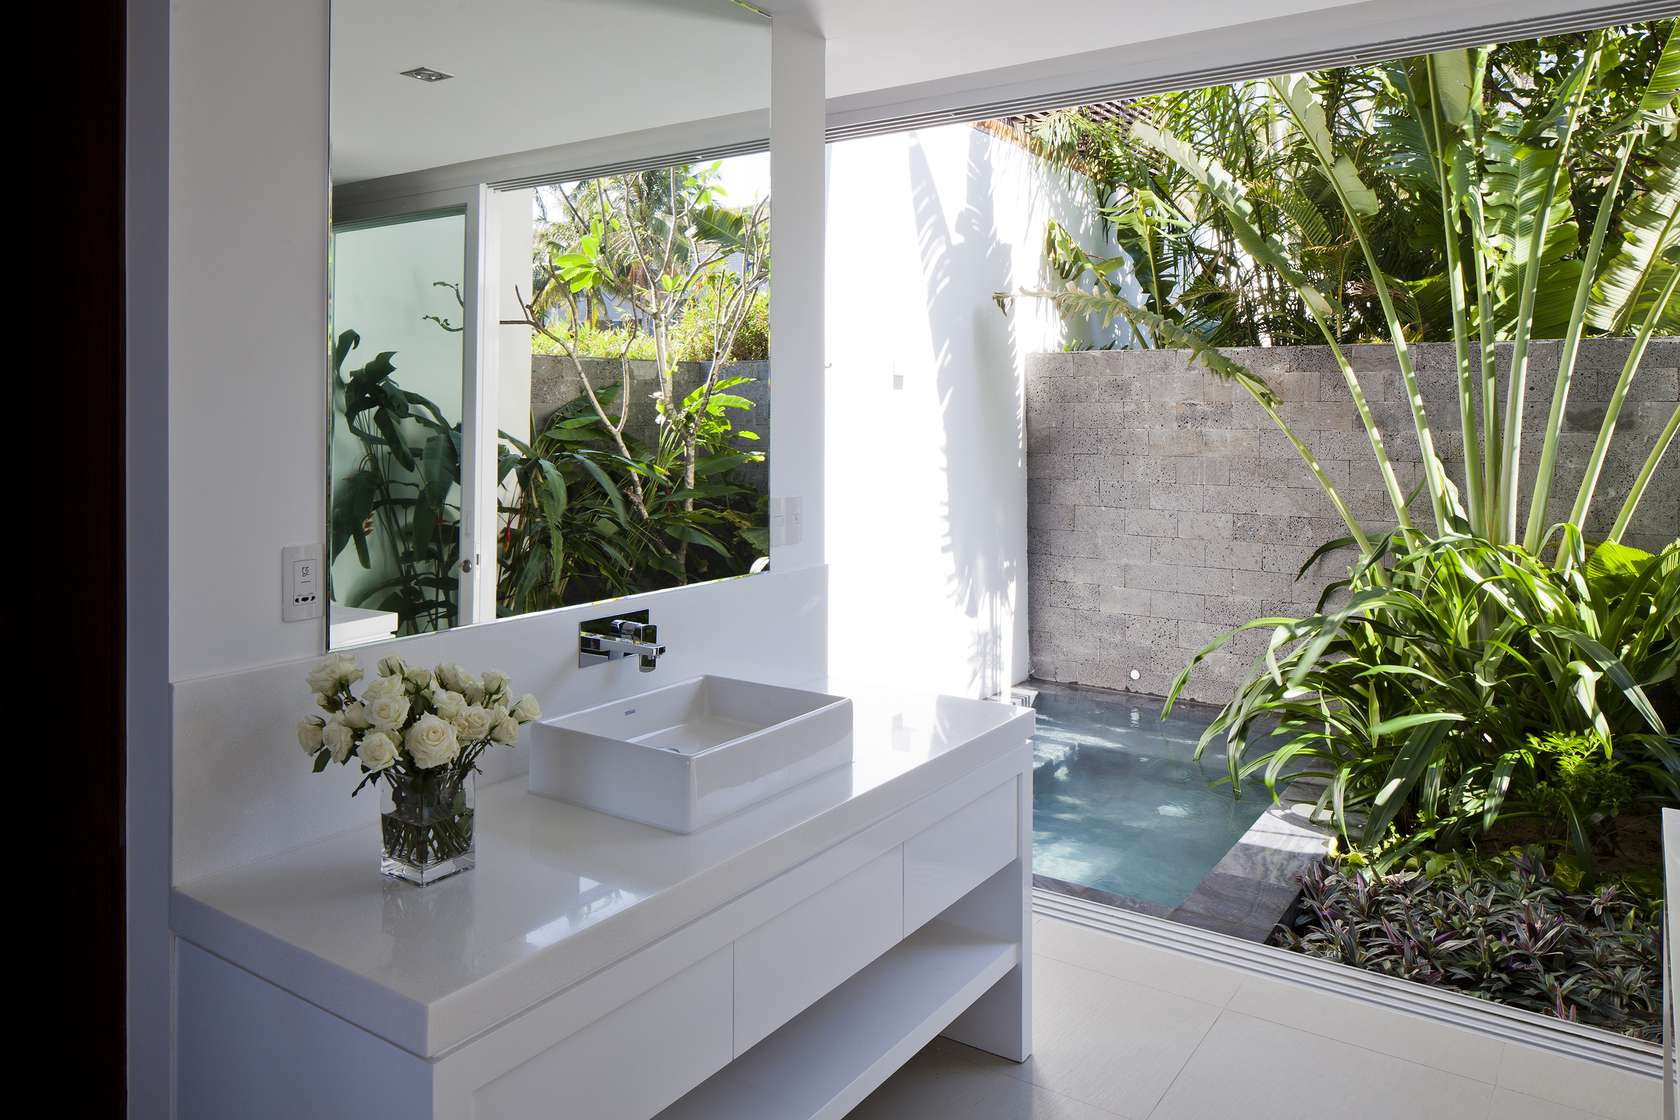 Oceanique-Villas-Vietnam-bathroom-vegetation